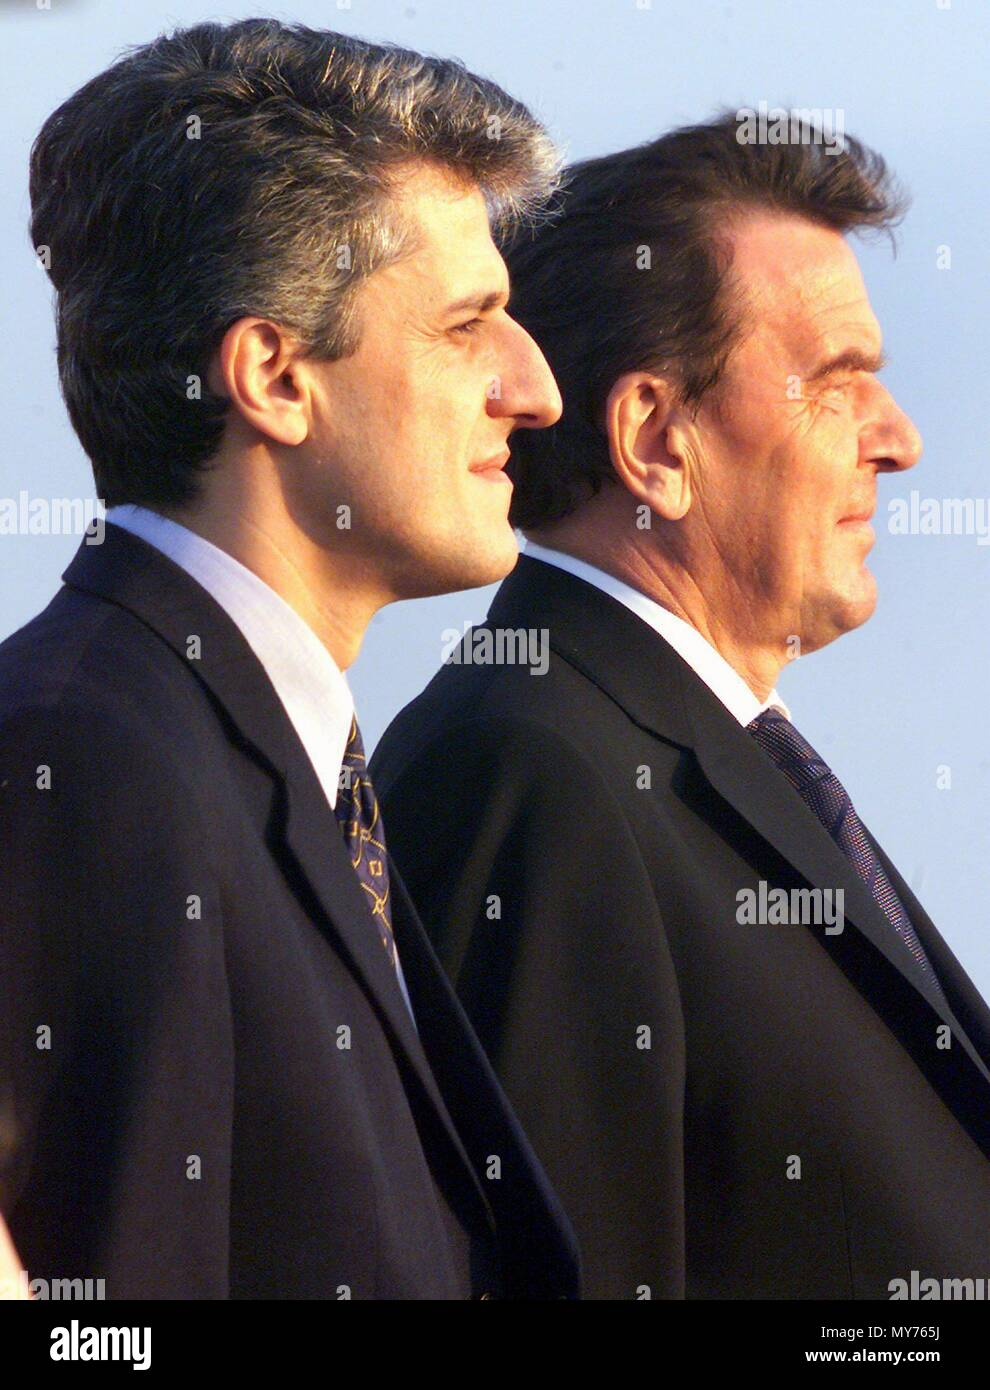 German Chancellor Gerhard Schroeder (R) and Albanian Prime Minister Pandeli Majko listen to the national anthems of both countries at the airport in Tirana, Albania, on 22 September 1999. Schroeder was received with military honours after his arrival in Albania.   usage worldwide - Stock Image